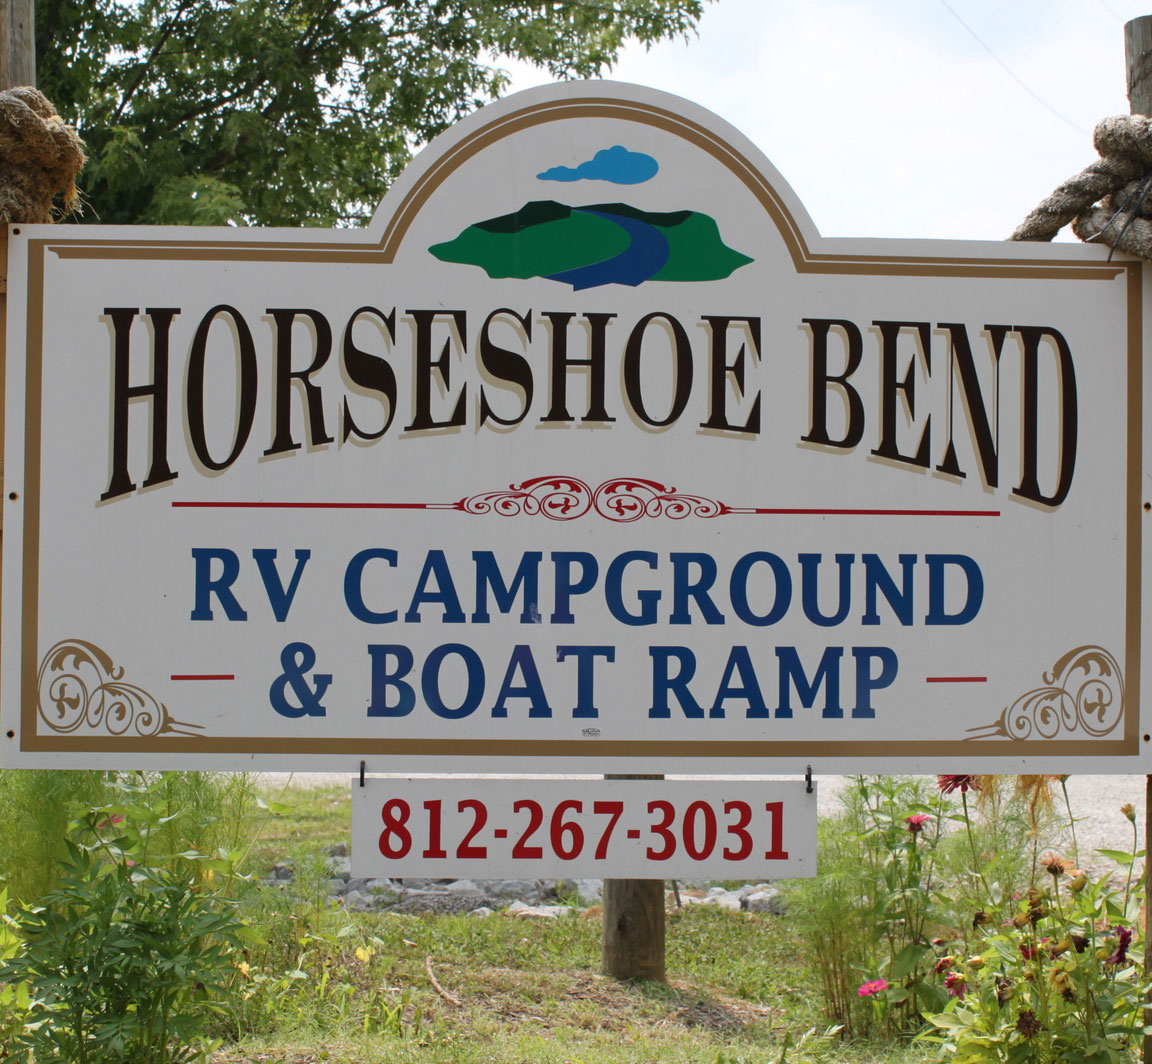 Horseshoe Bend Rv Campground, Cabins & Boat Ramp